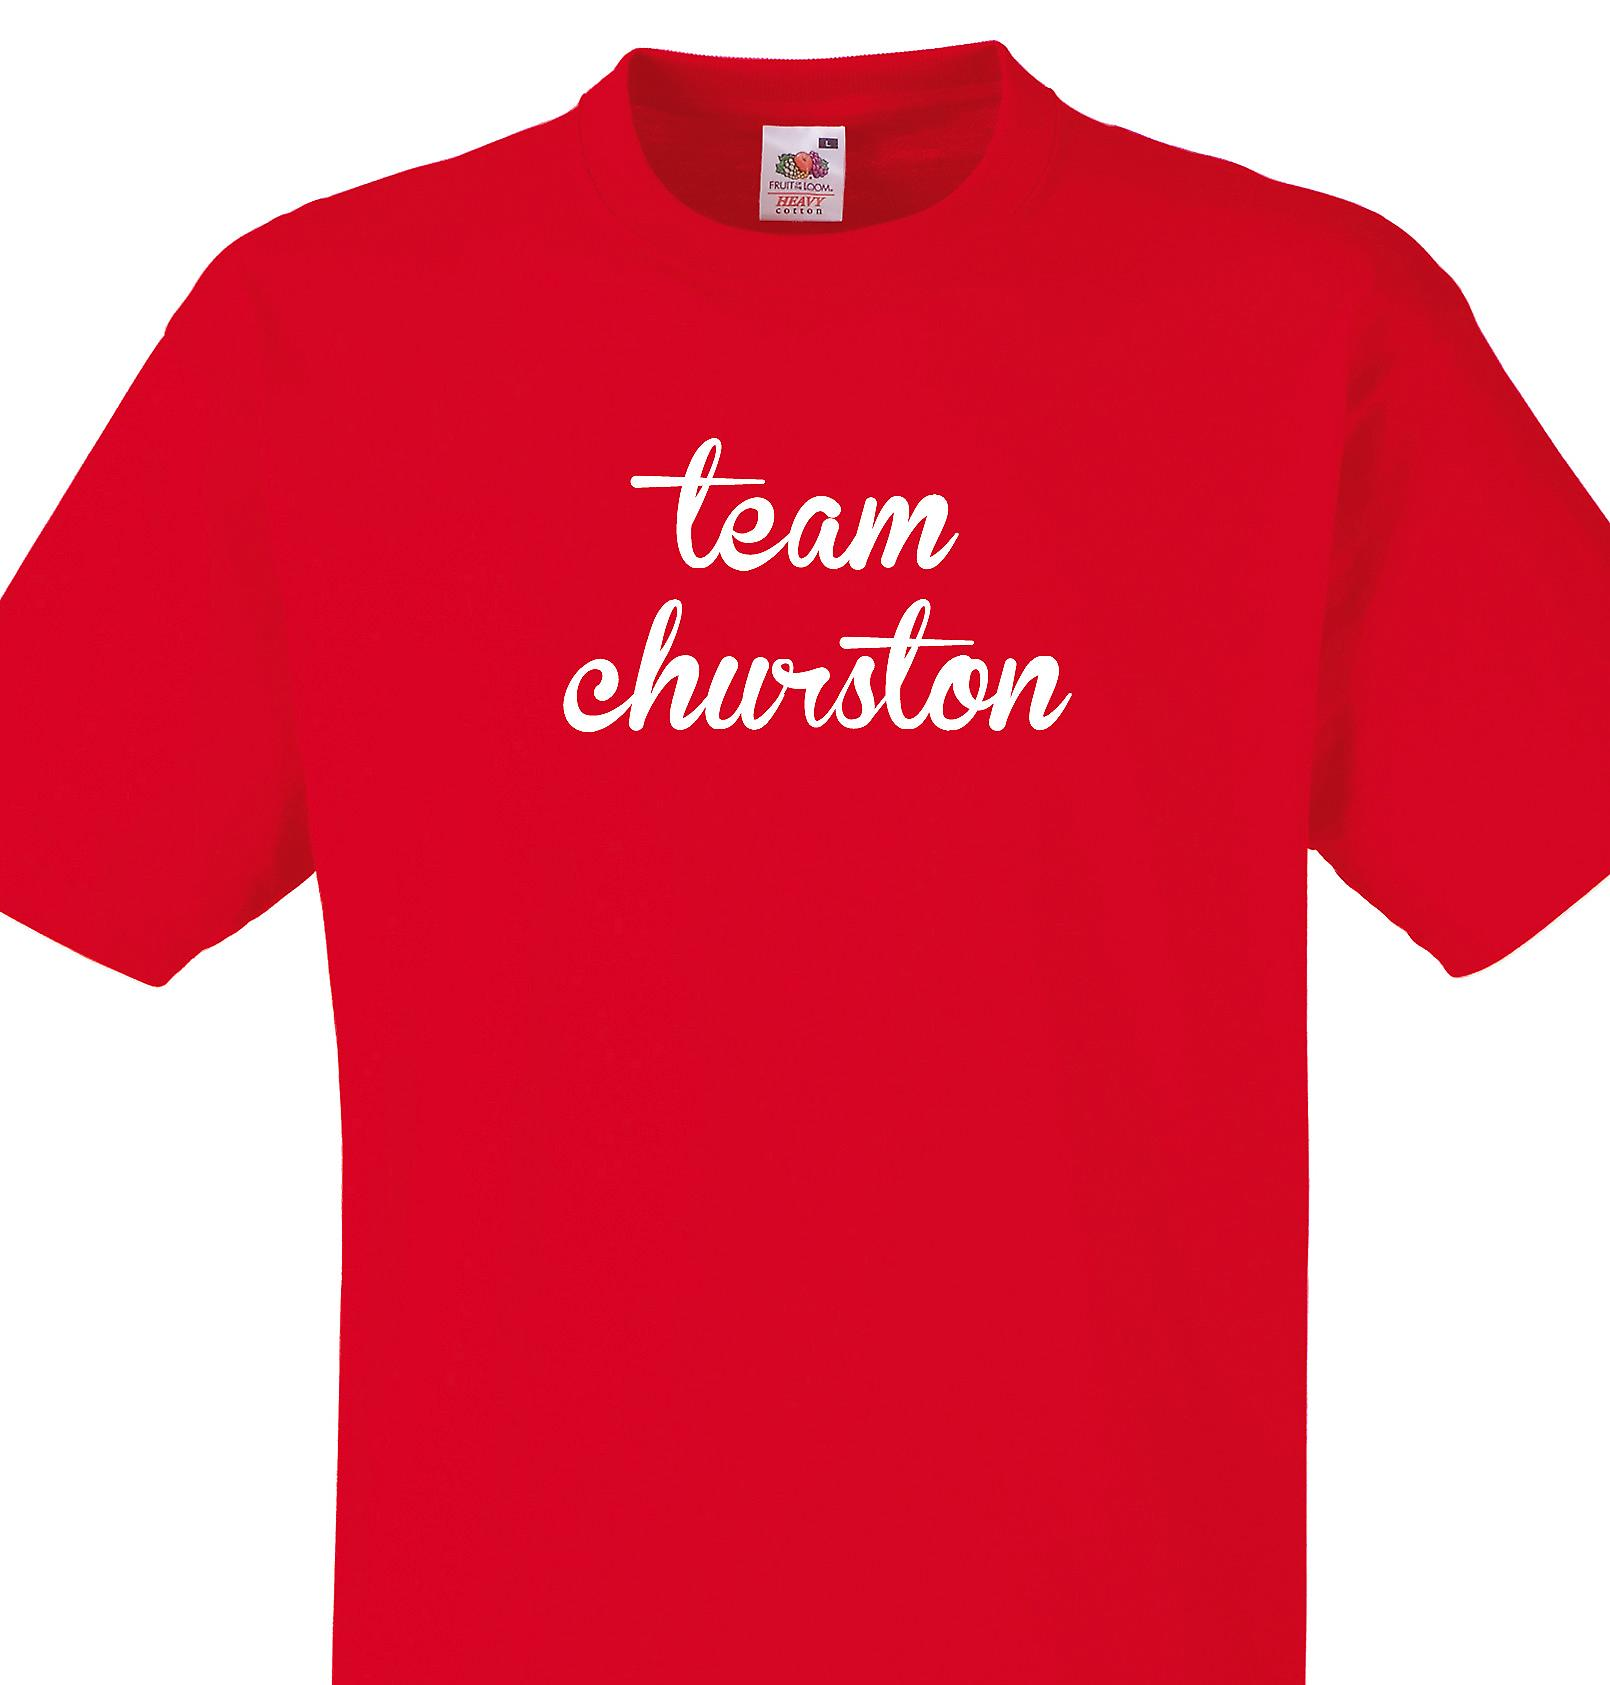 Team Churston Red T shirt